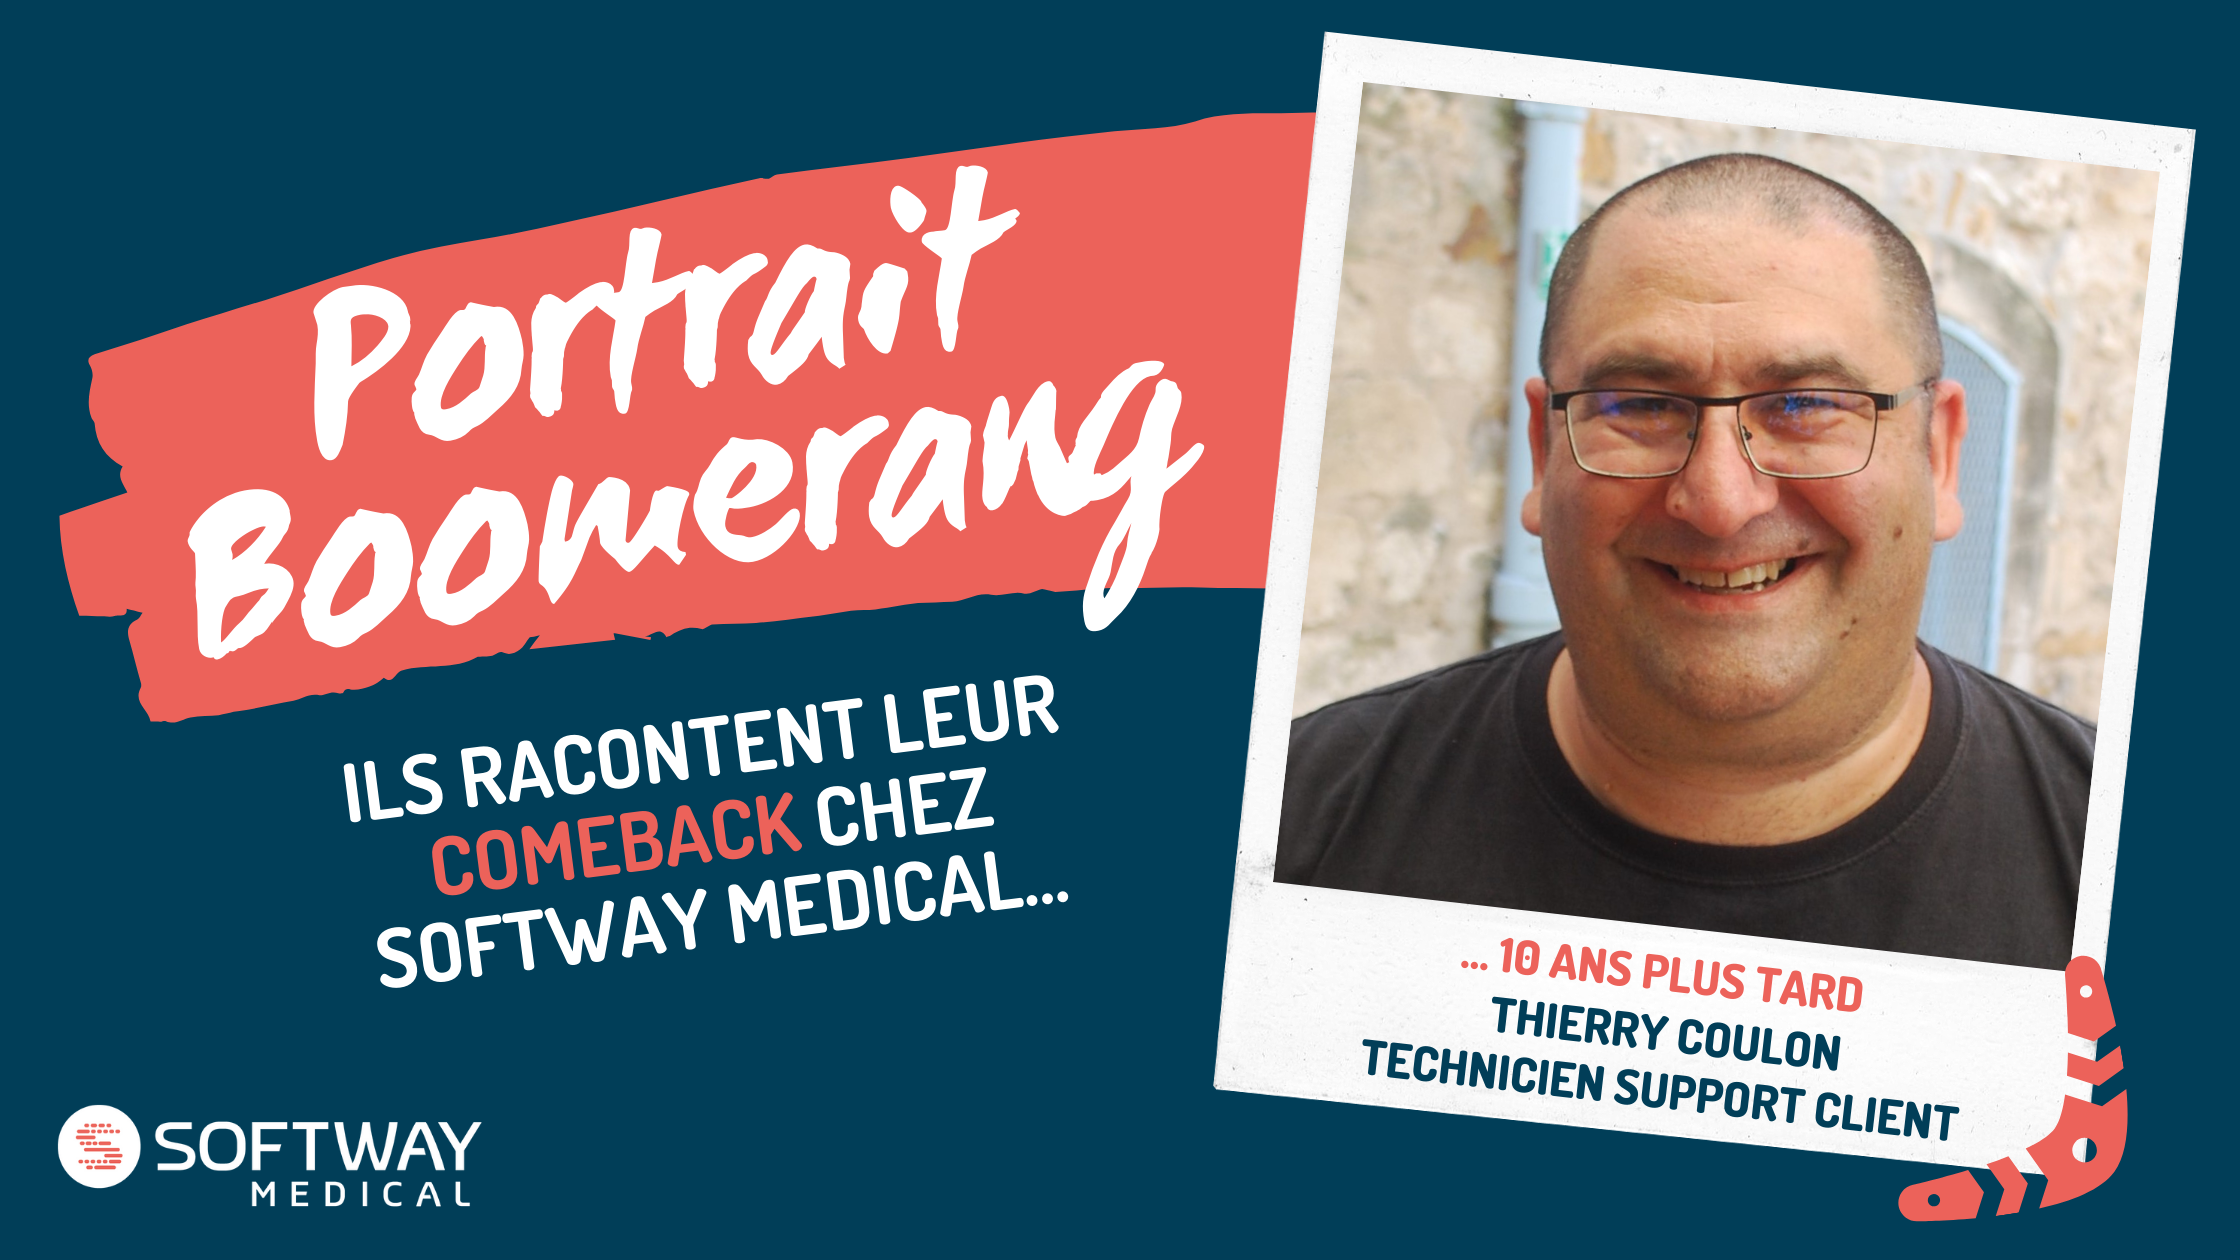 Thierry Coulon, Technicien Support Client